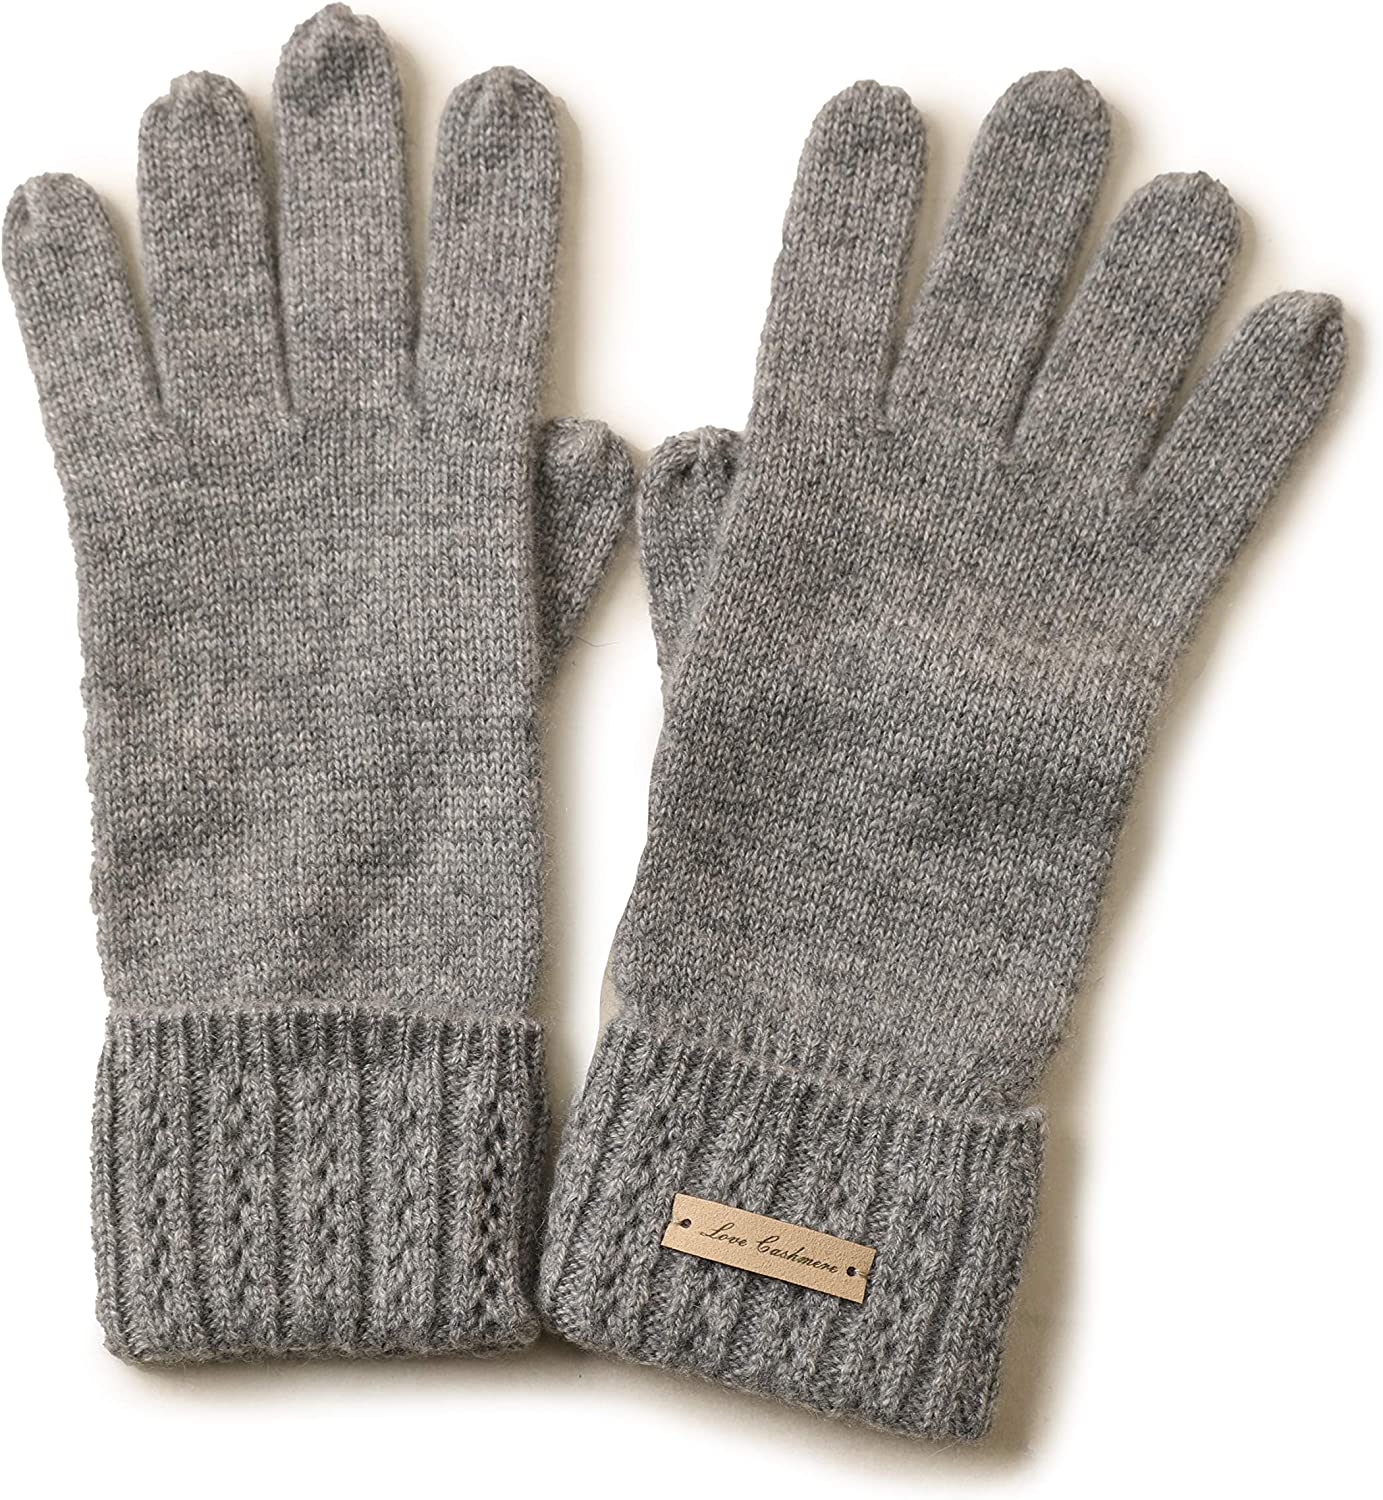 Winter Fashion Womens Five-finger Gloves Warm 100% Pure Cashmere Hollowed Cable Edge Knitted Gloves